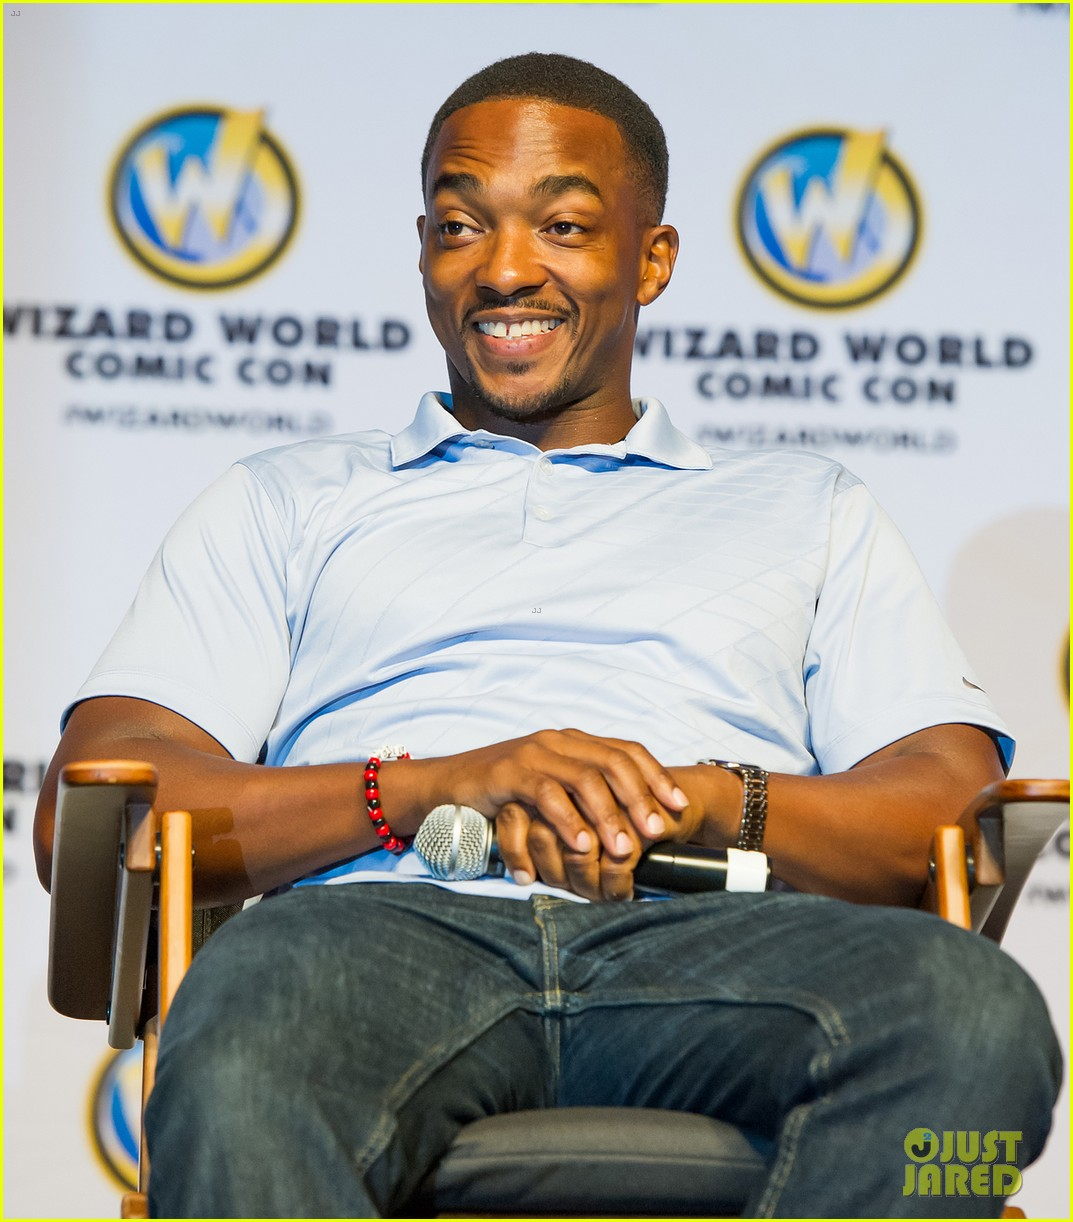 http://cdn03.cdn.justjared.com/wp-content/uploads/2014/06/stan-philly/sebastian-stan-anthony-mackie-philadelphia-comic-con-2014-02.jpg